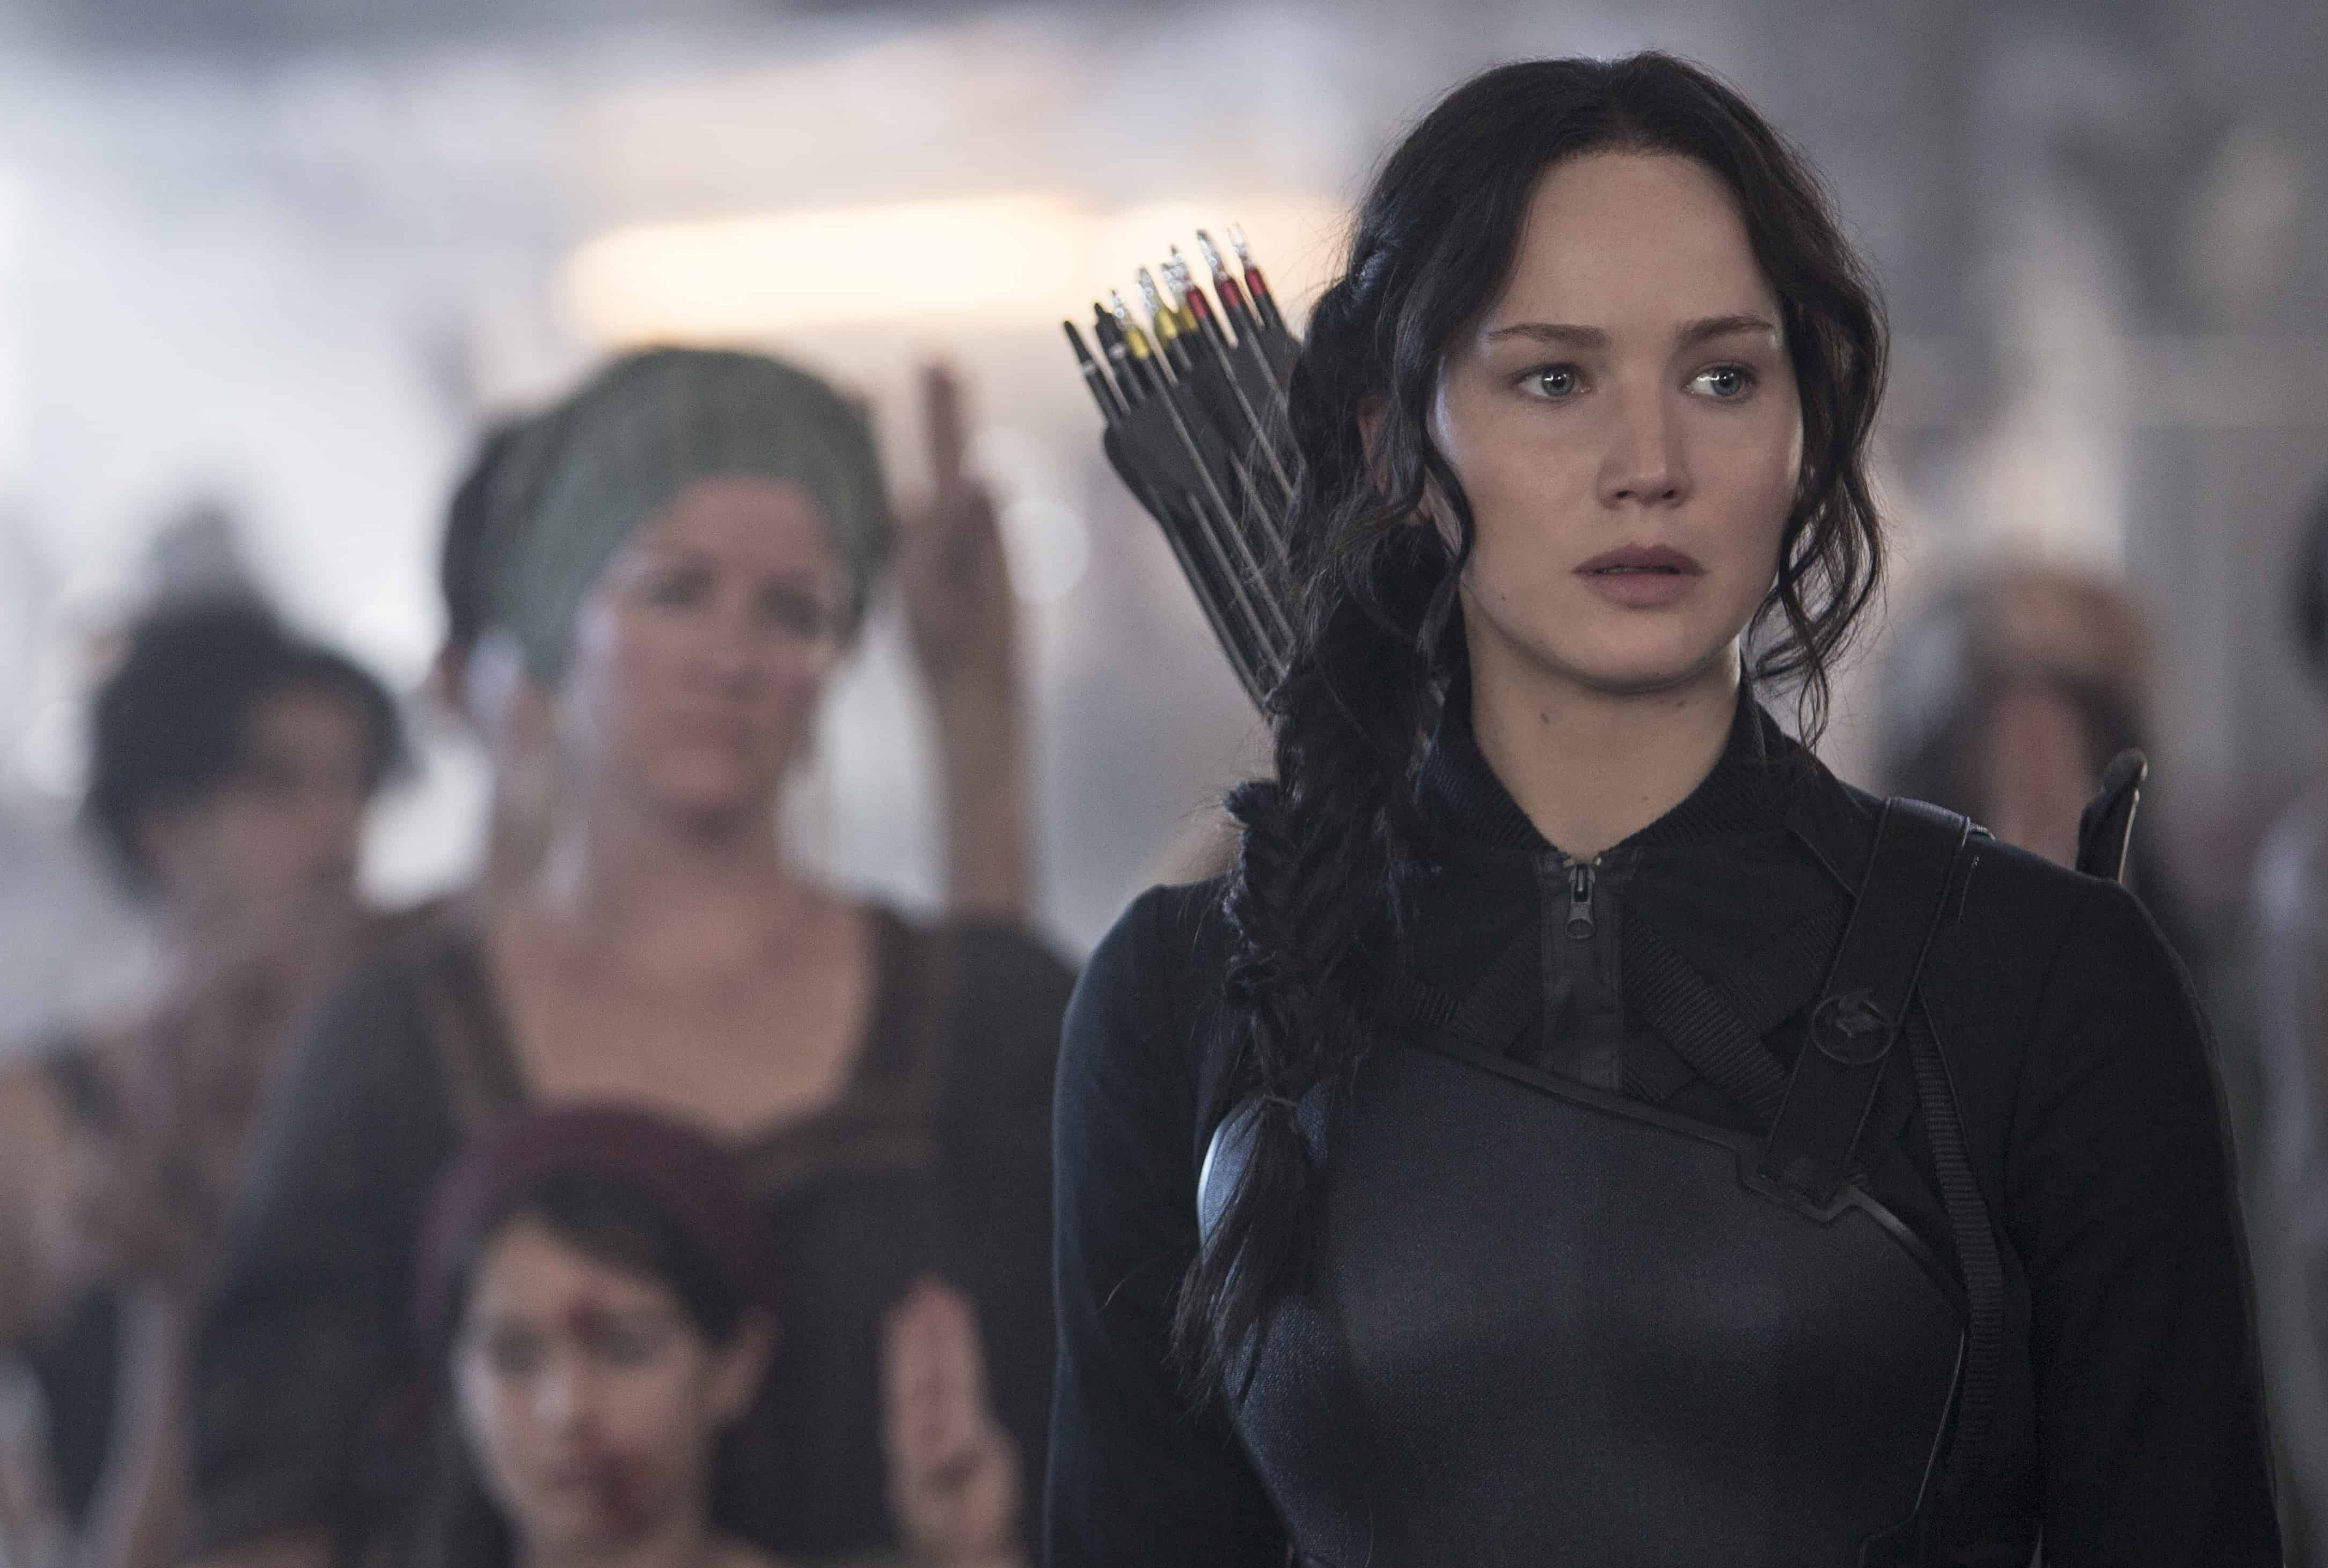 New Trailer For 'The Hunger Games: Mockingjay – Part 1'